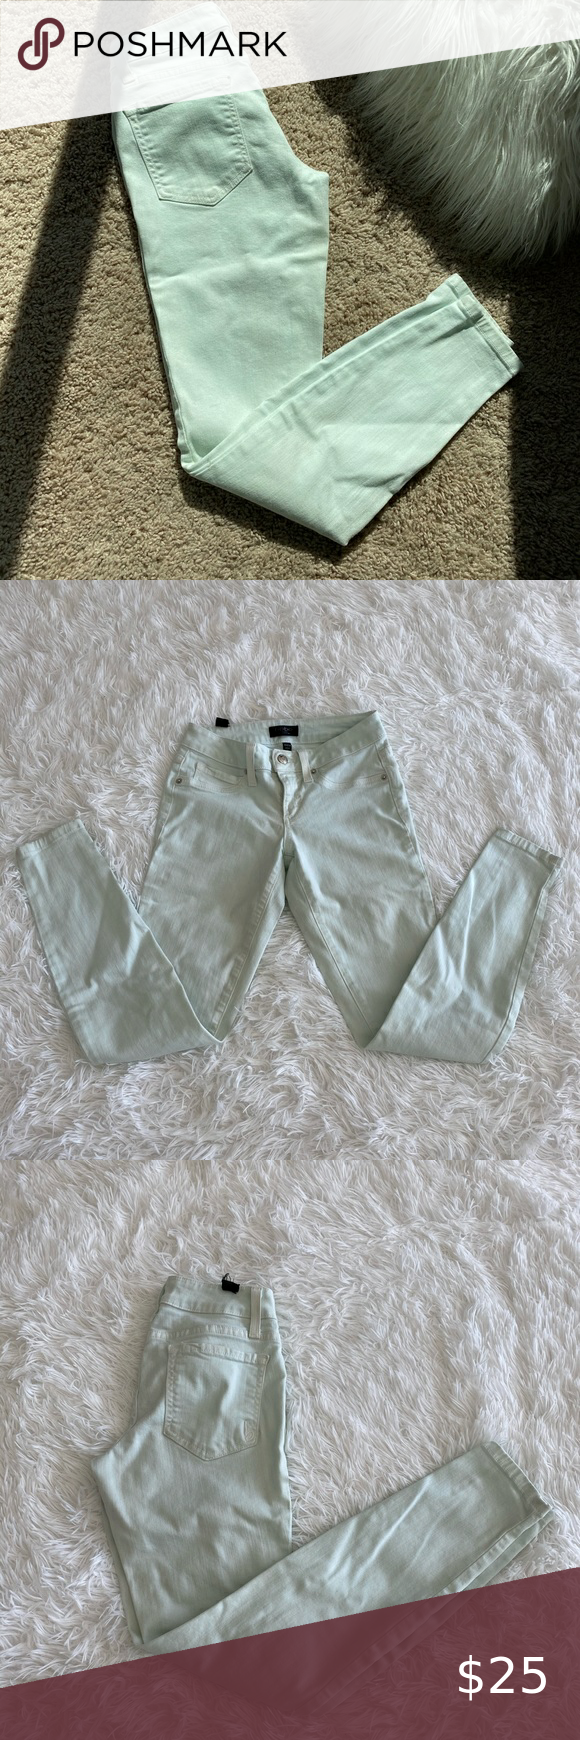 Mint Green Mid Rise Bebe Jeans 26 These Are Excellent Condition Comfy Flattering Mint Green Jeans Size 26 By Be In 2020 Mint Green Jeans Bebe Jeans Womens Jeans Skinny